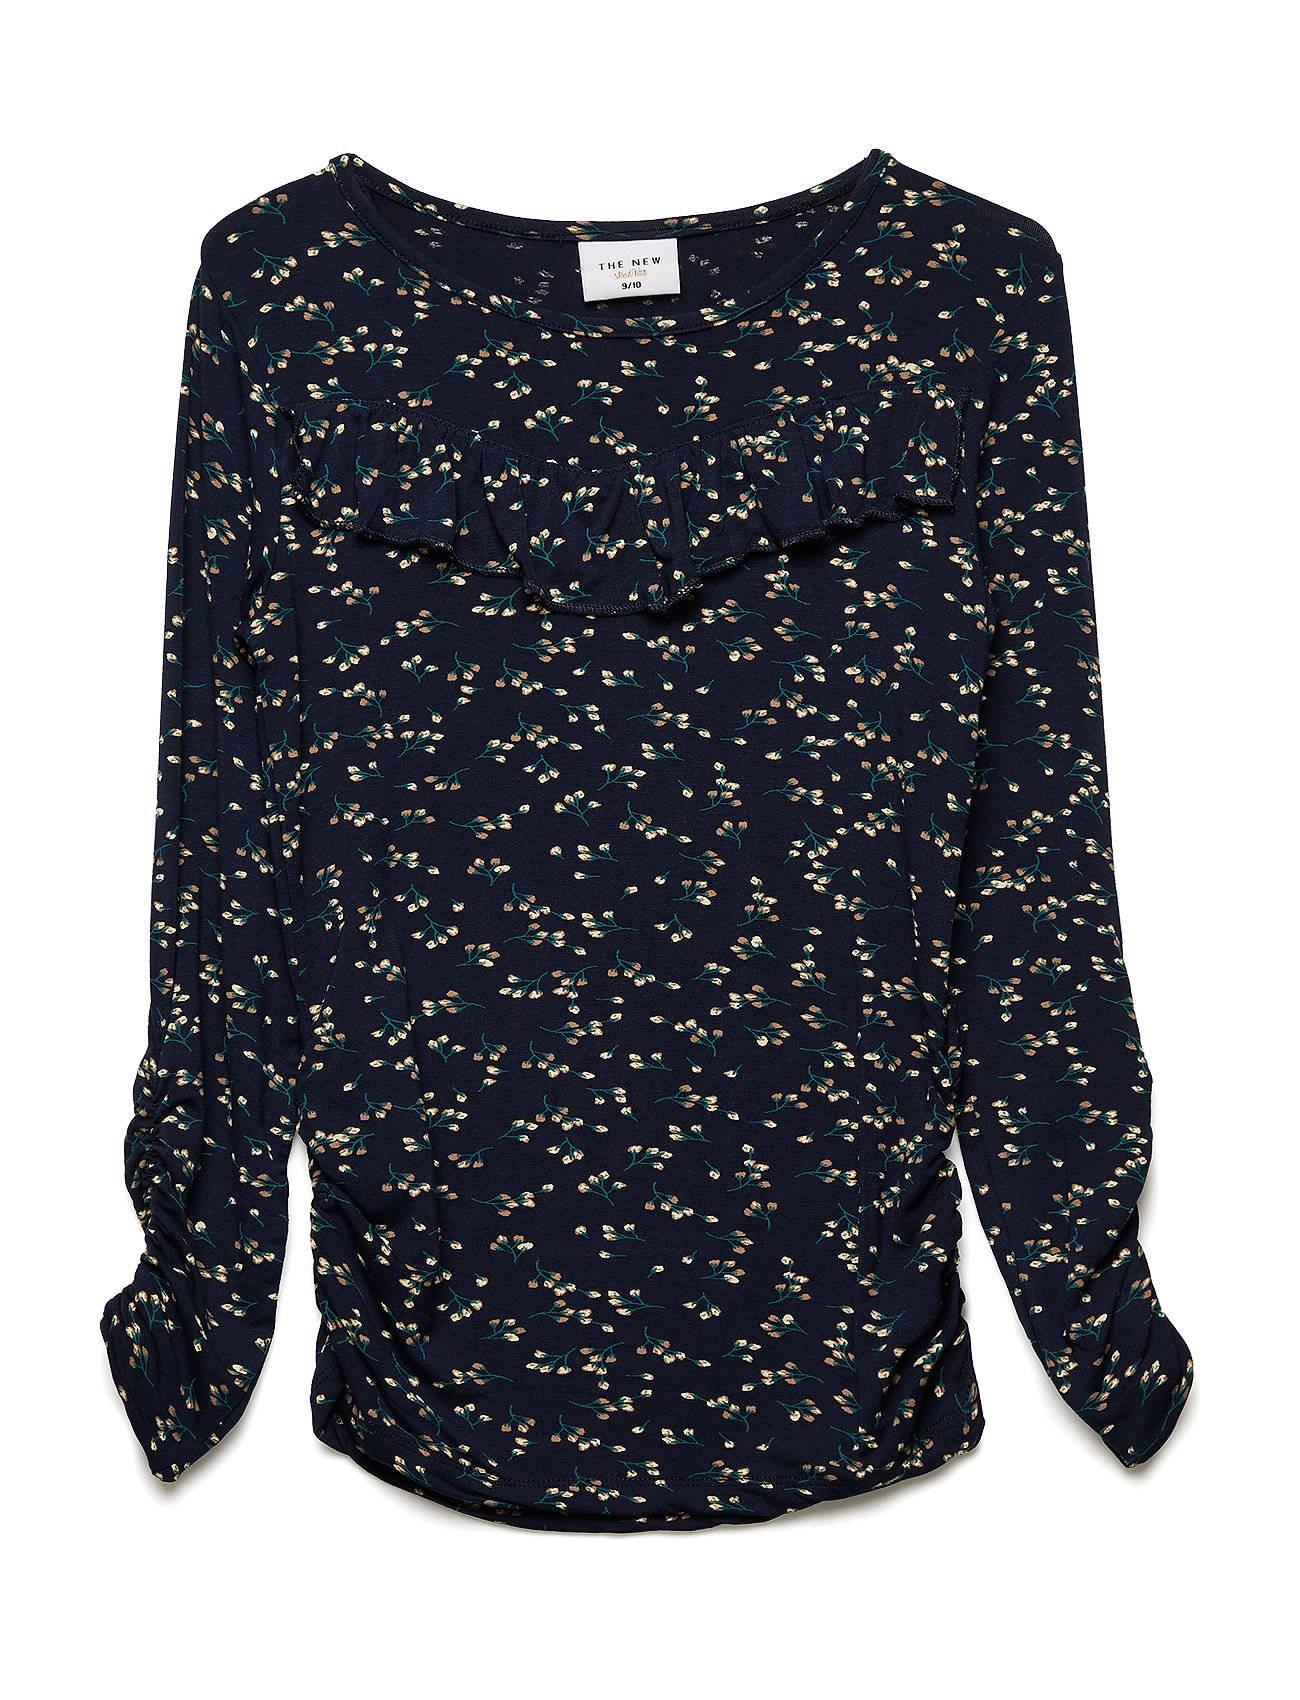 The New Isabella L_s Top